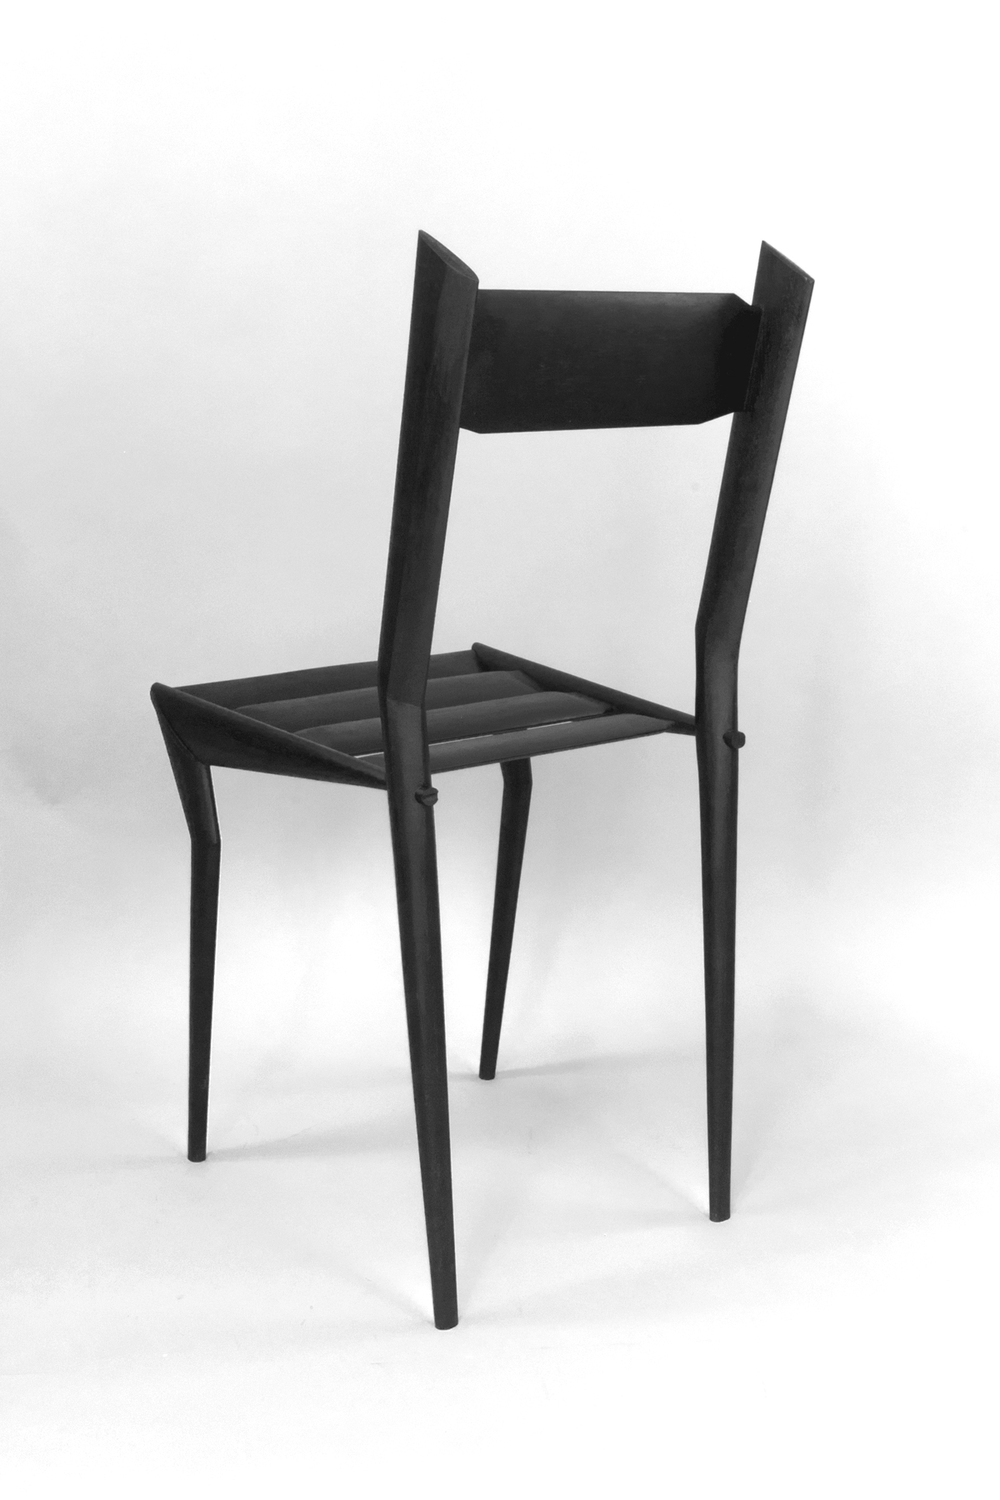 Black Chair in Wood, 2013.